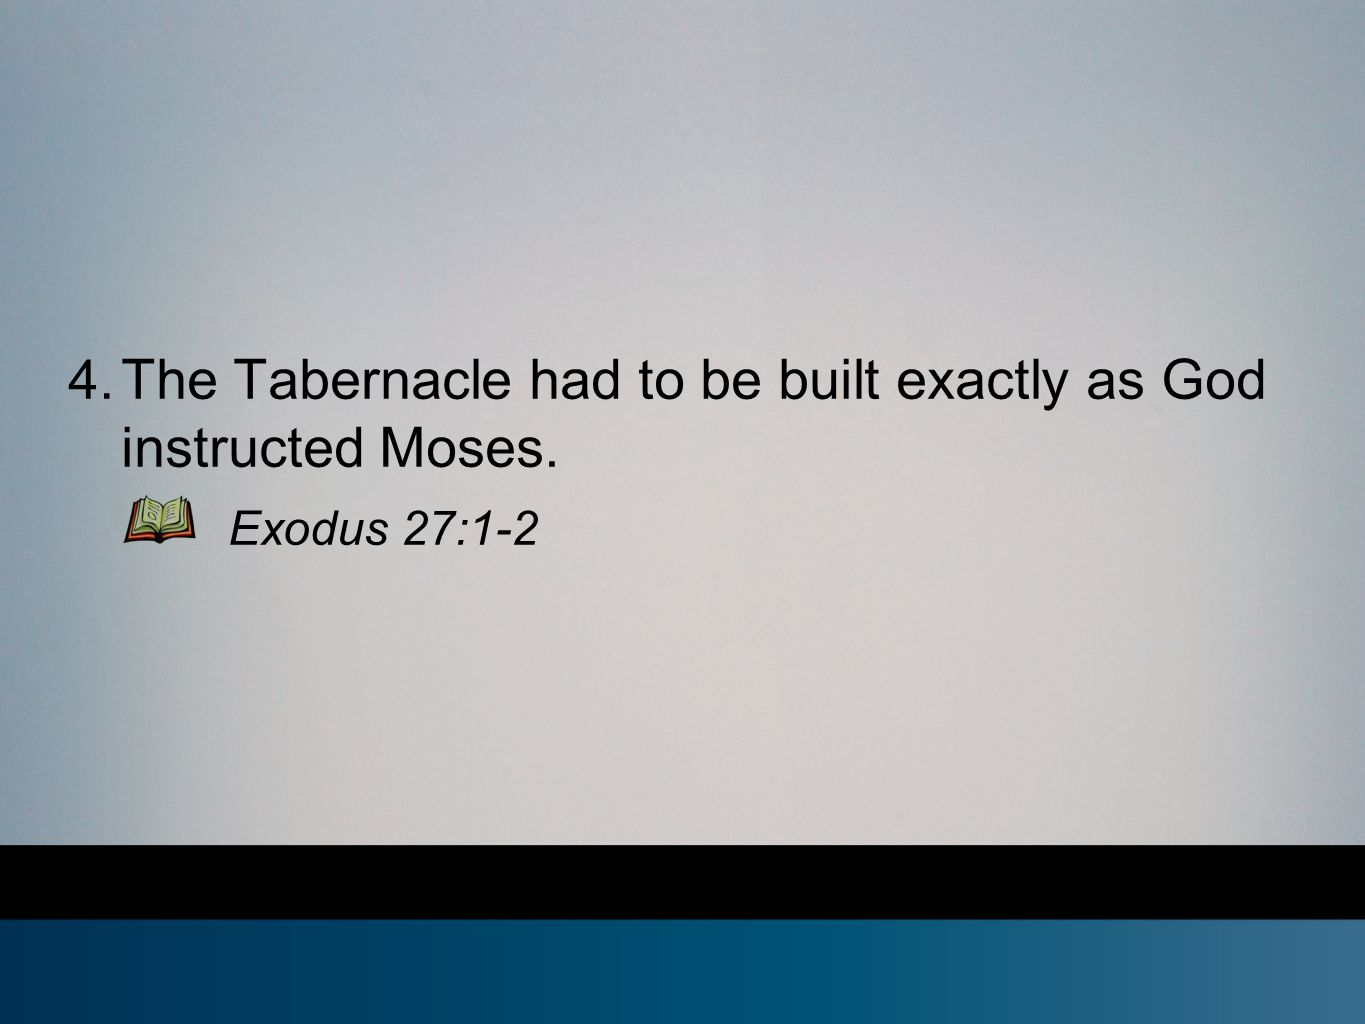 4. The Tabernacle had to be built exactly as God instructed Moses. Exodus 27:1-2